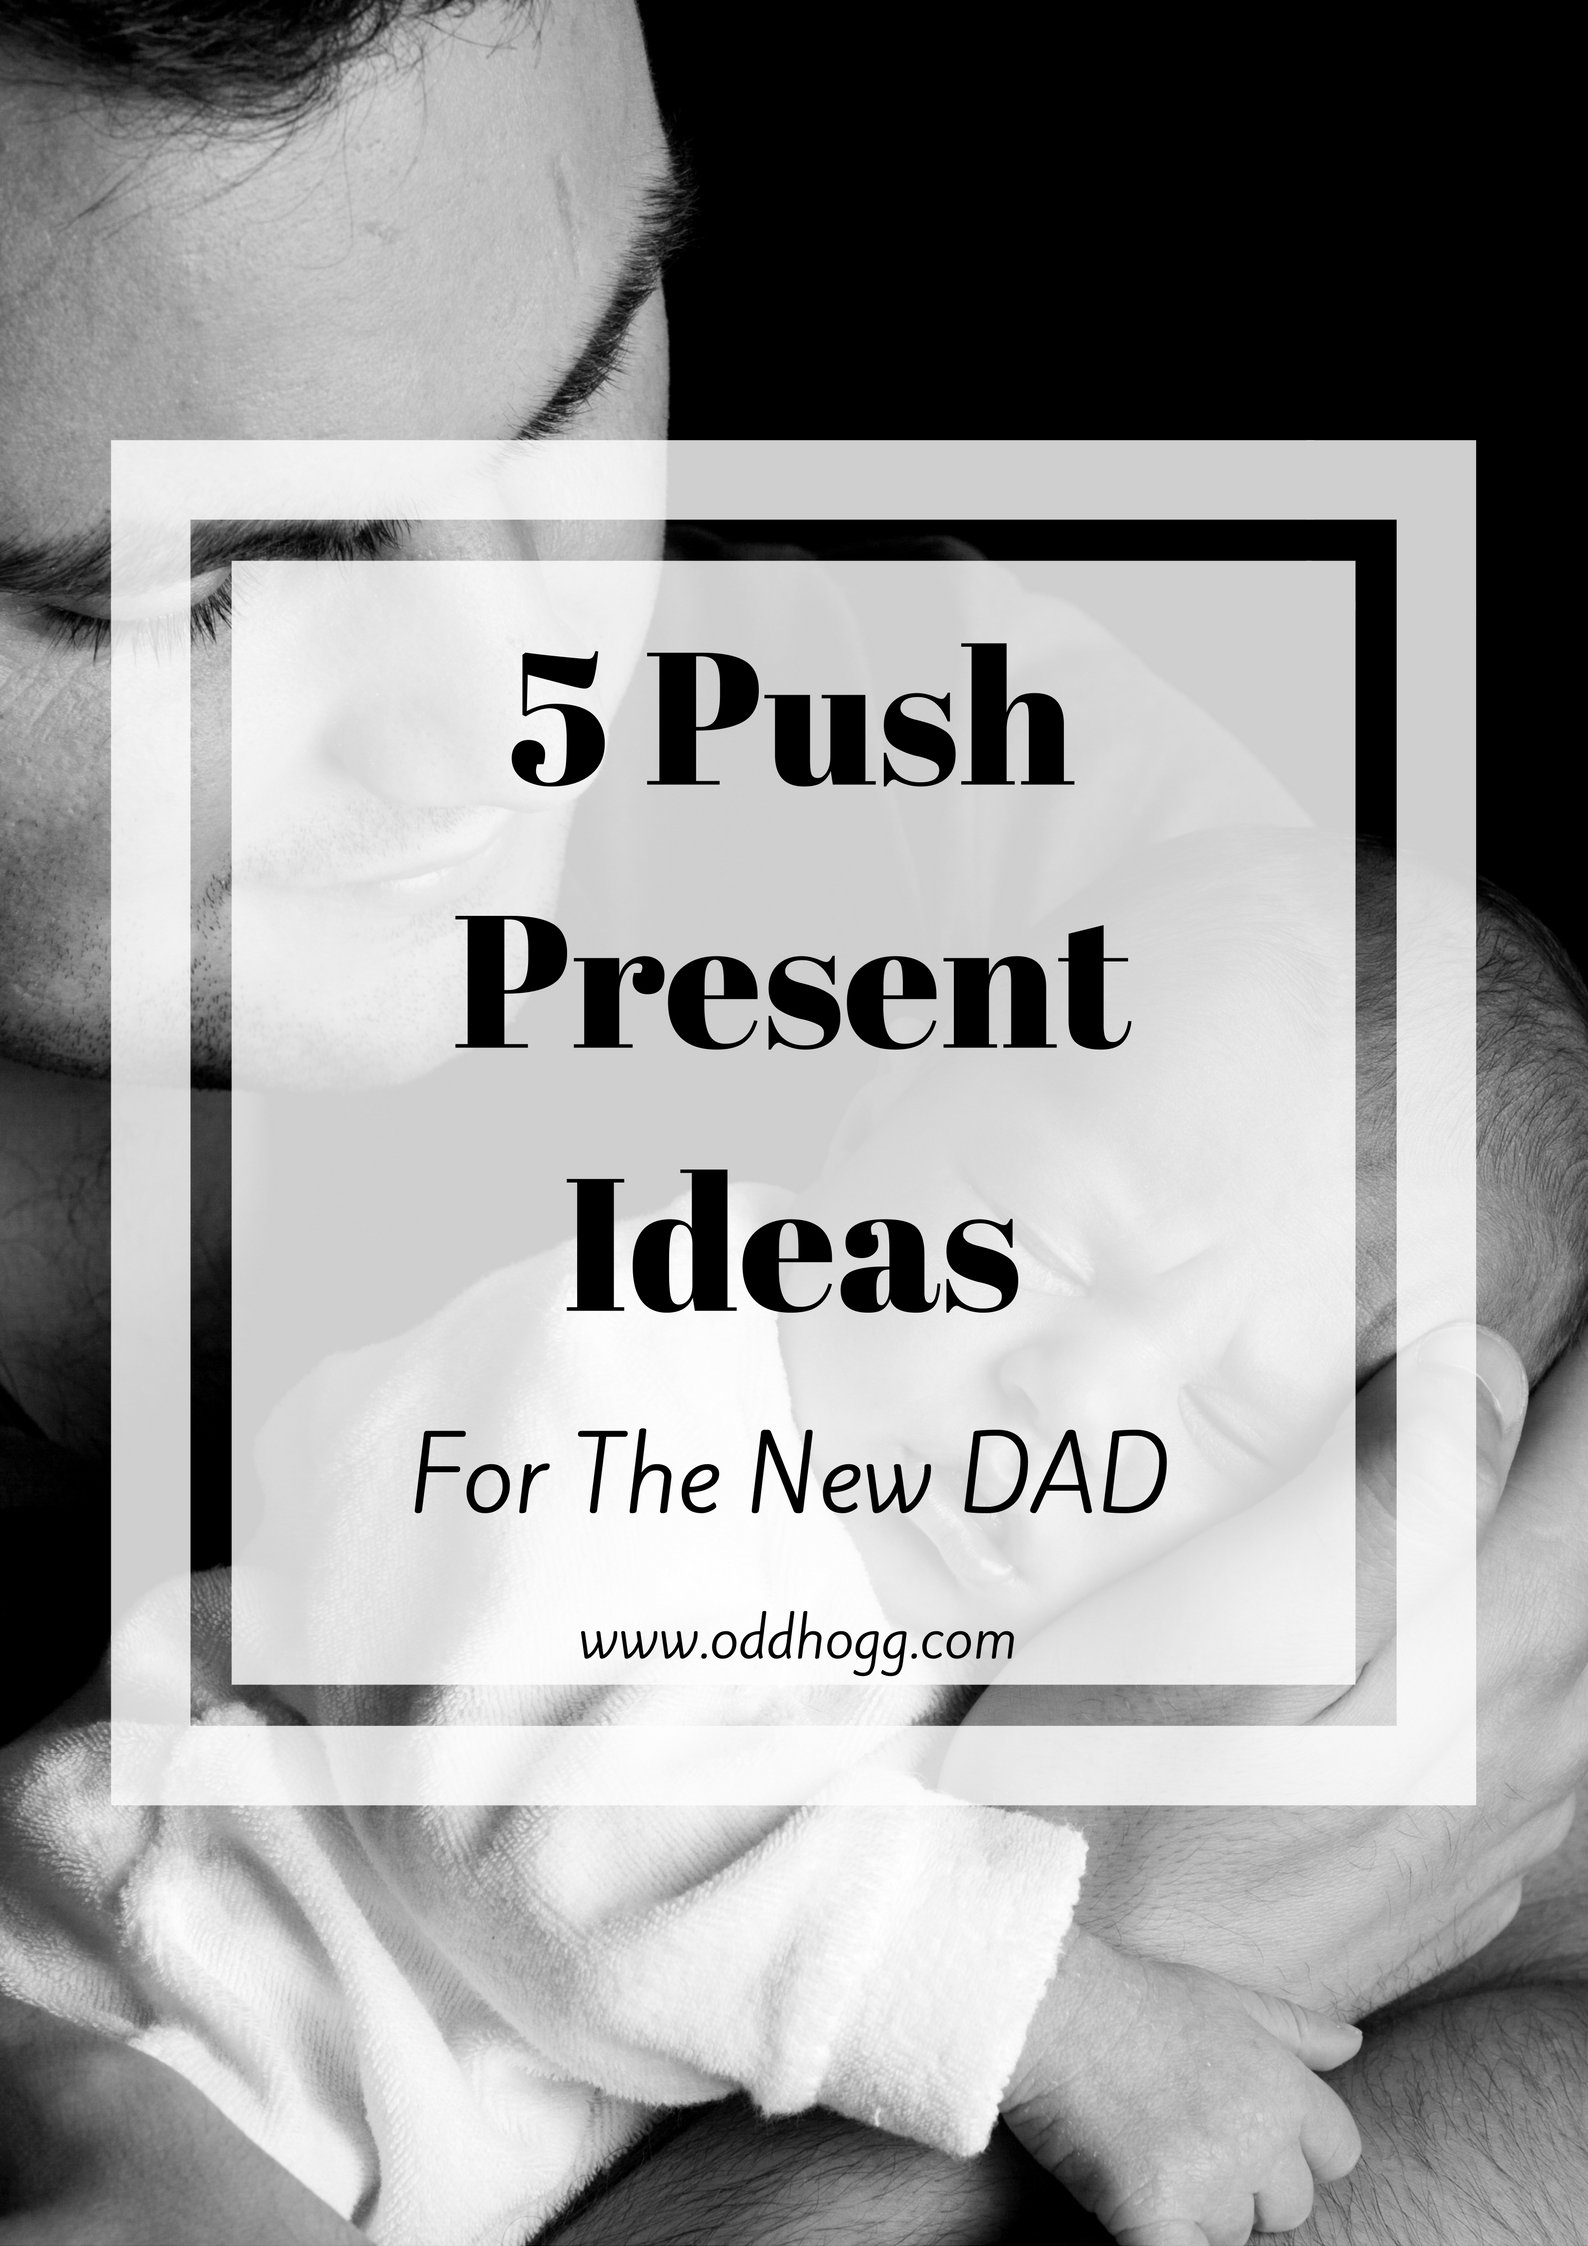 5 push present ideas - for the new dad - oddhogg